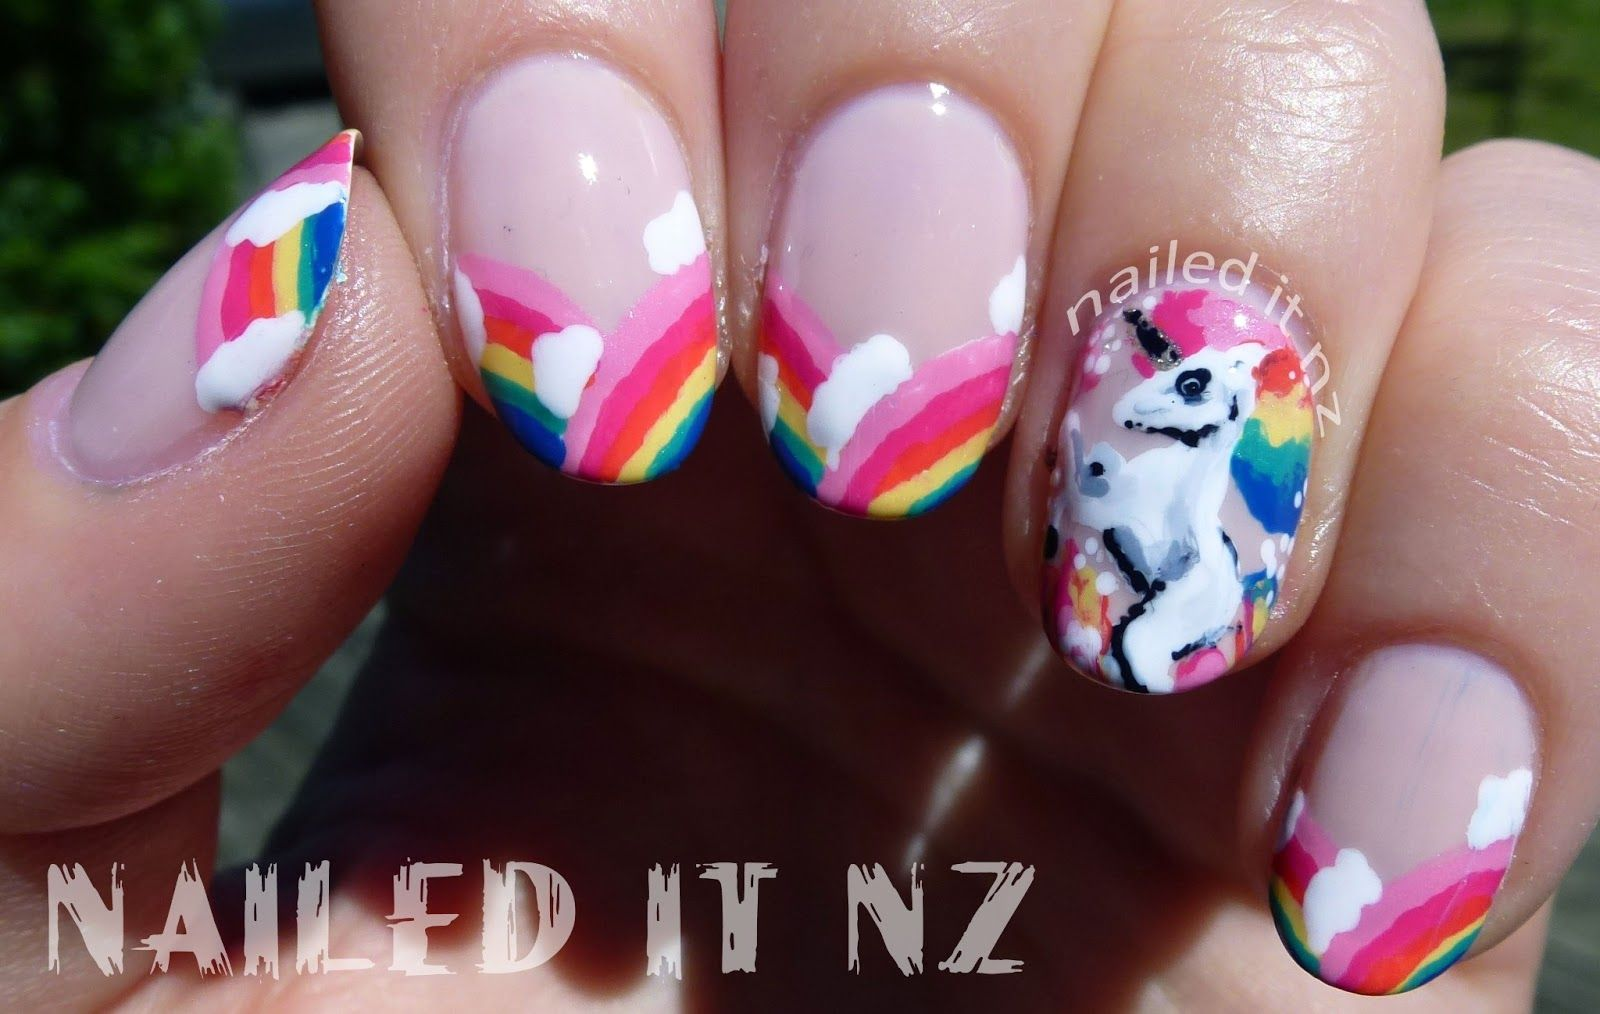 unicorn nails - Google Search | Nail art | Pinterest